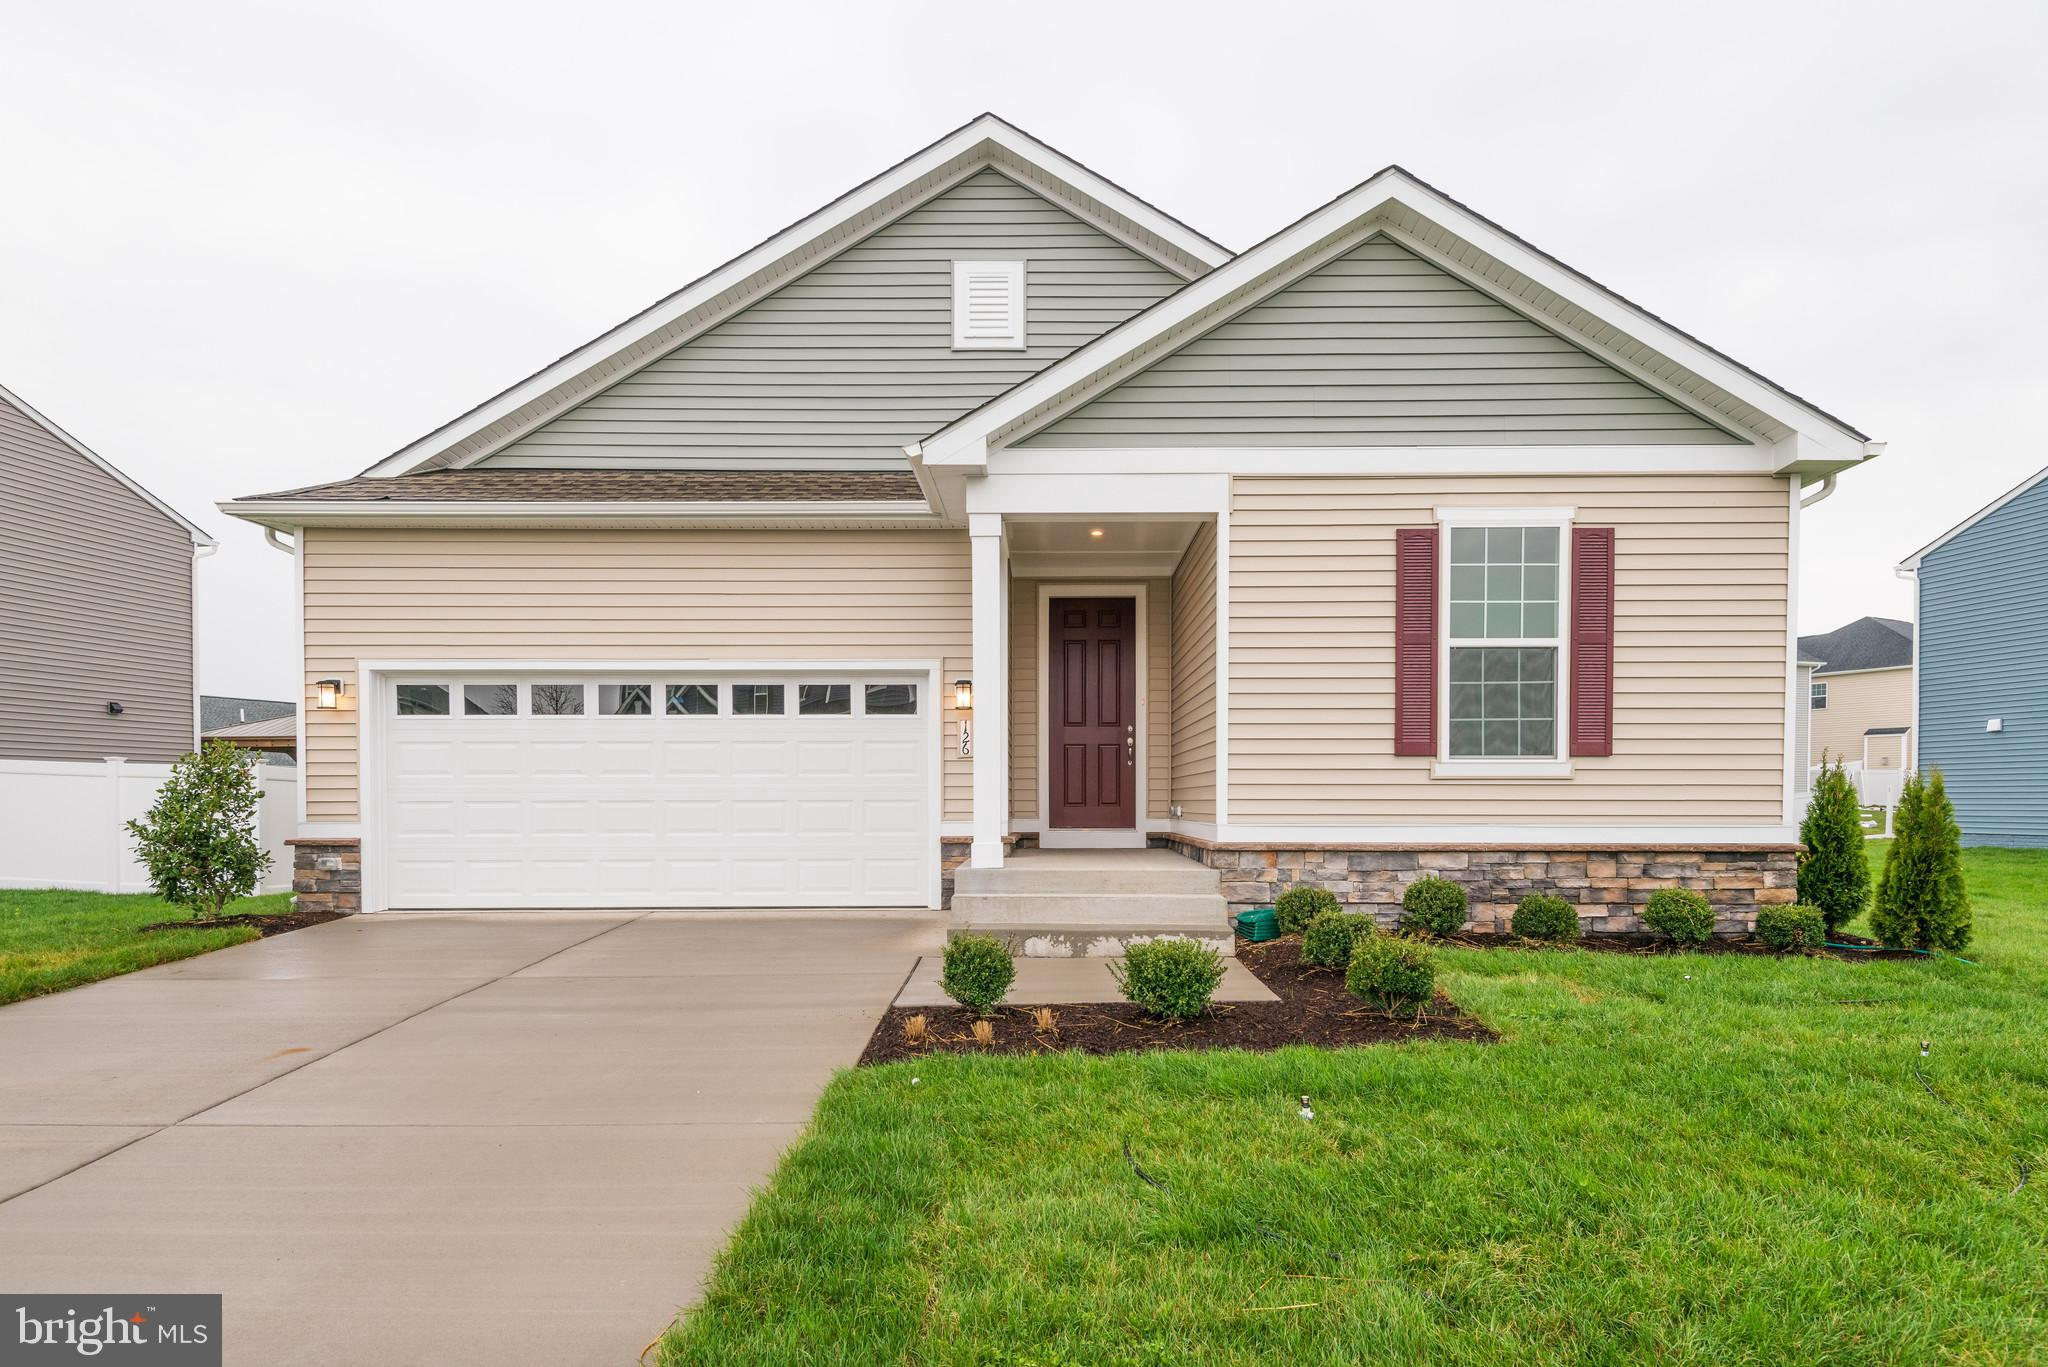 Final home for sale in prime Southern Hills community! Ready for move-in ranch home build by Richmon